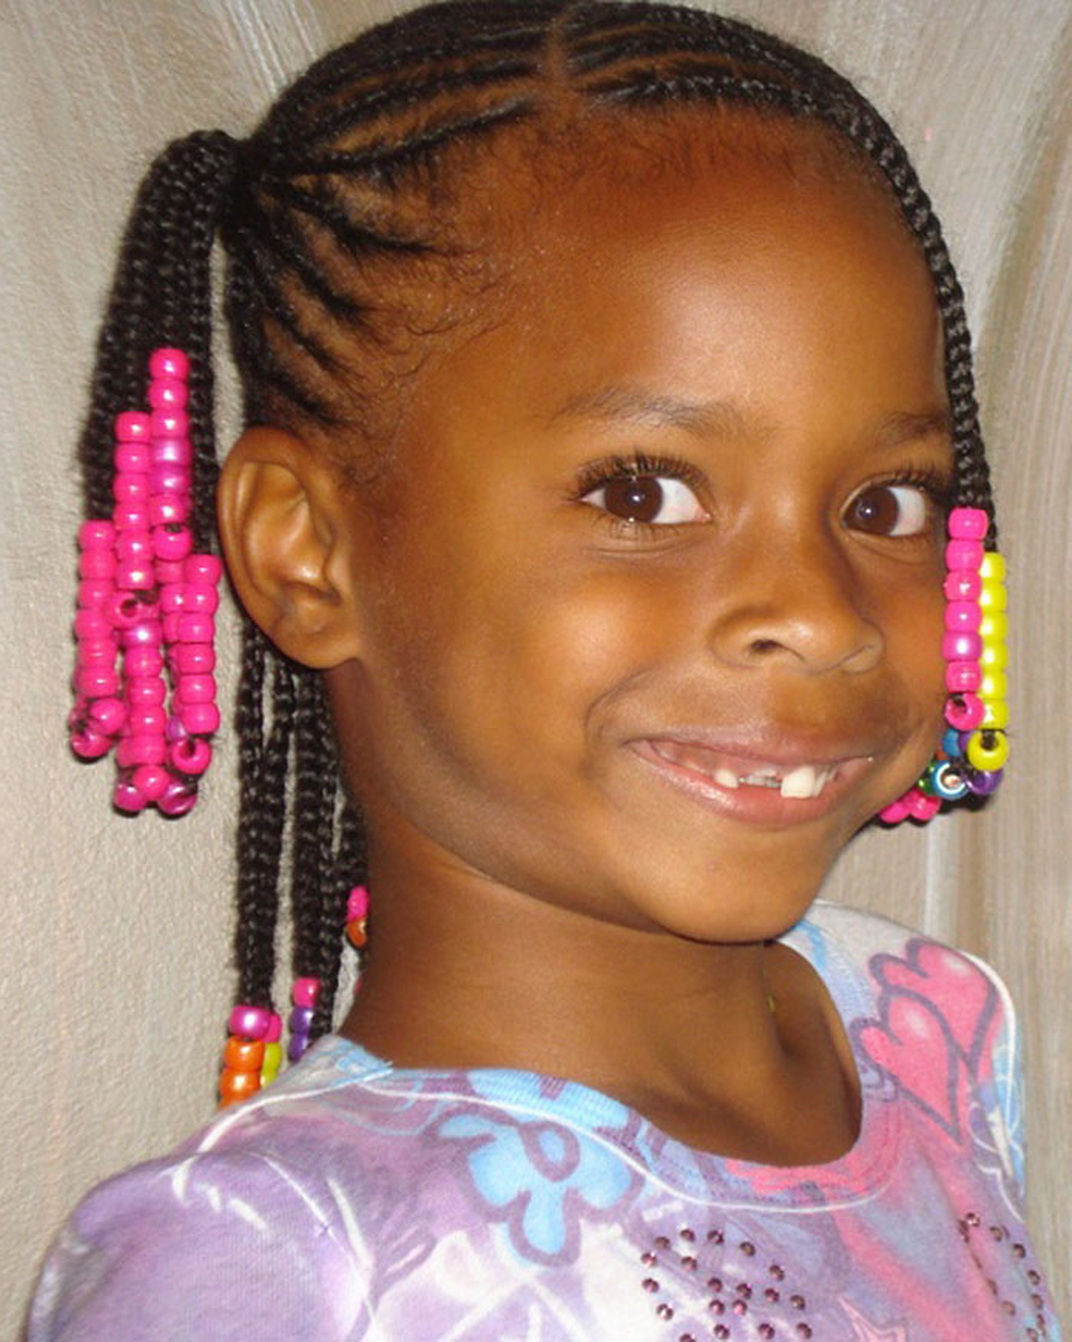 Best ideas about Cute Easy Black Girl Hairstyles . Save or Pin Black girl hairstyles with curls Hairstyle for women & man Now.